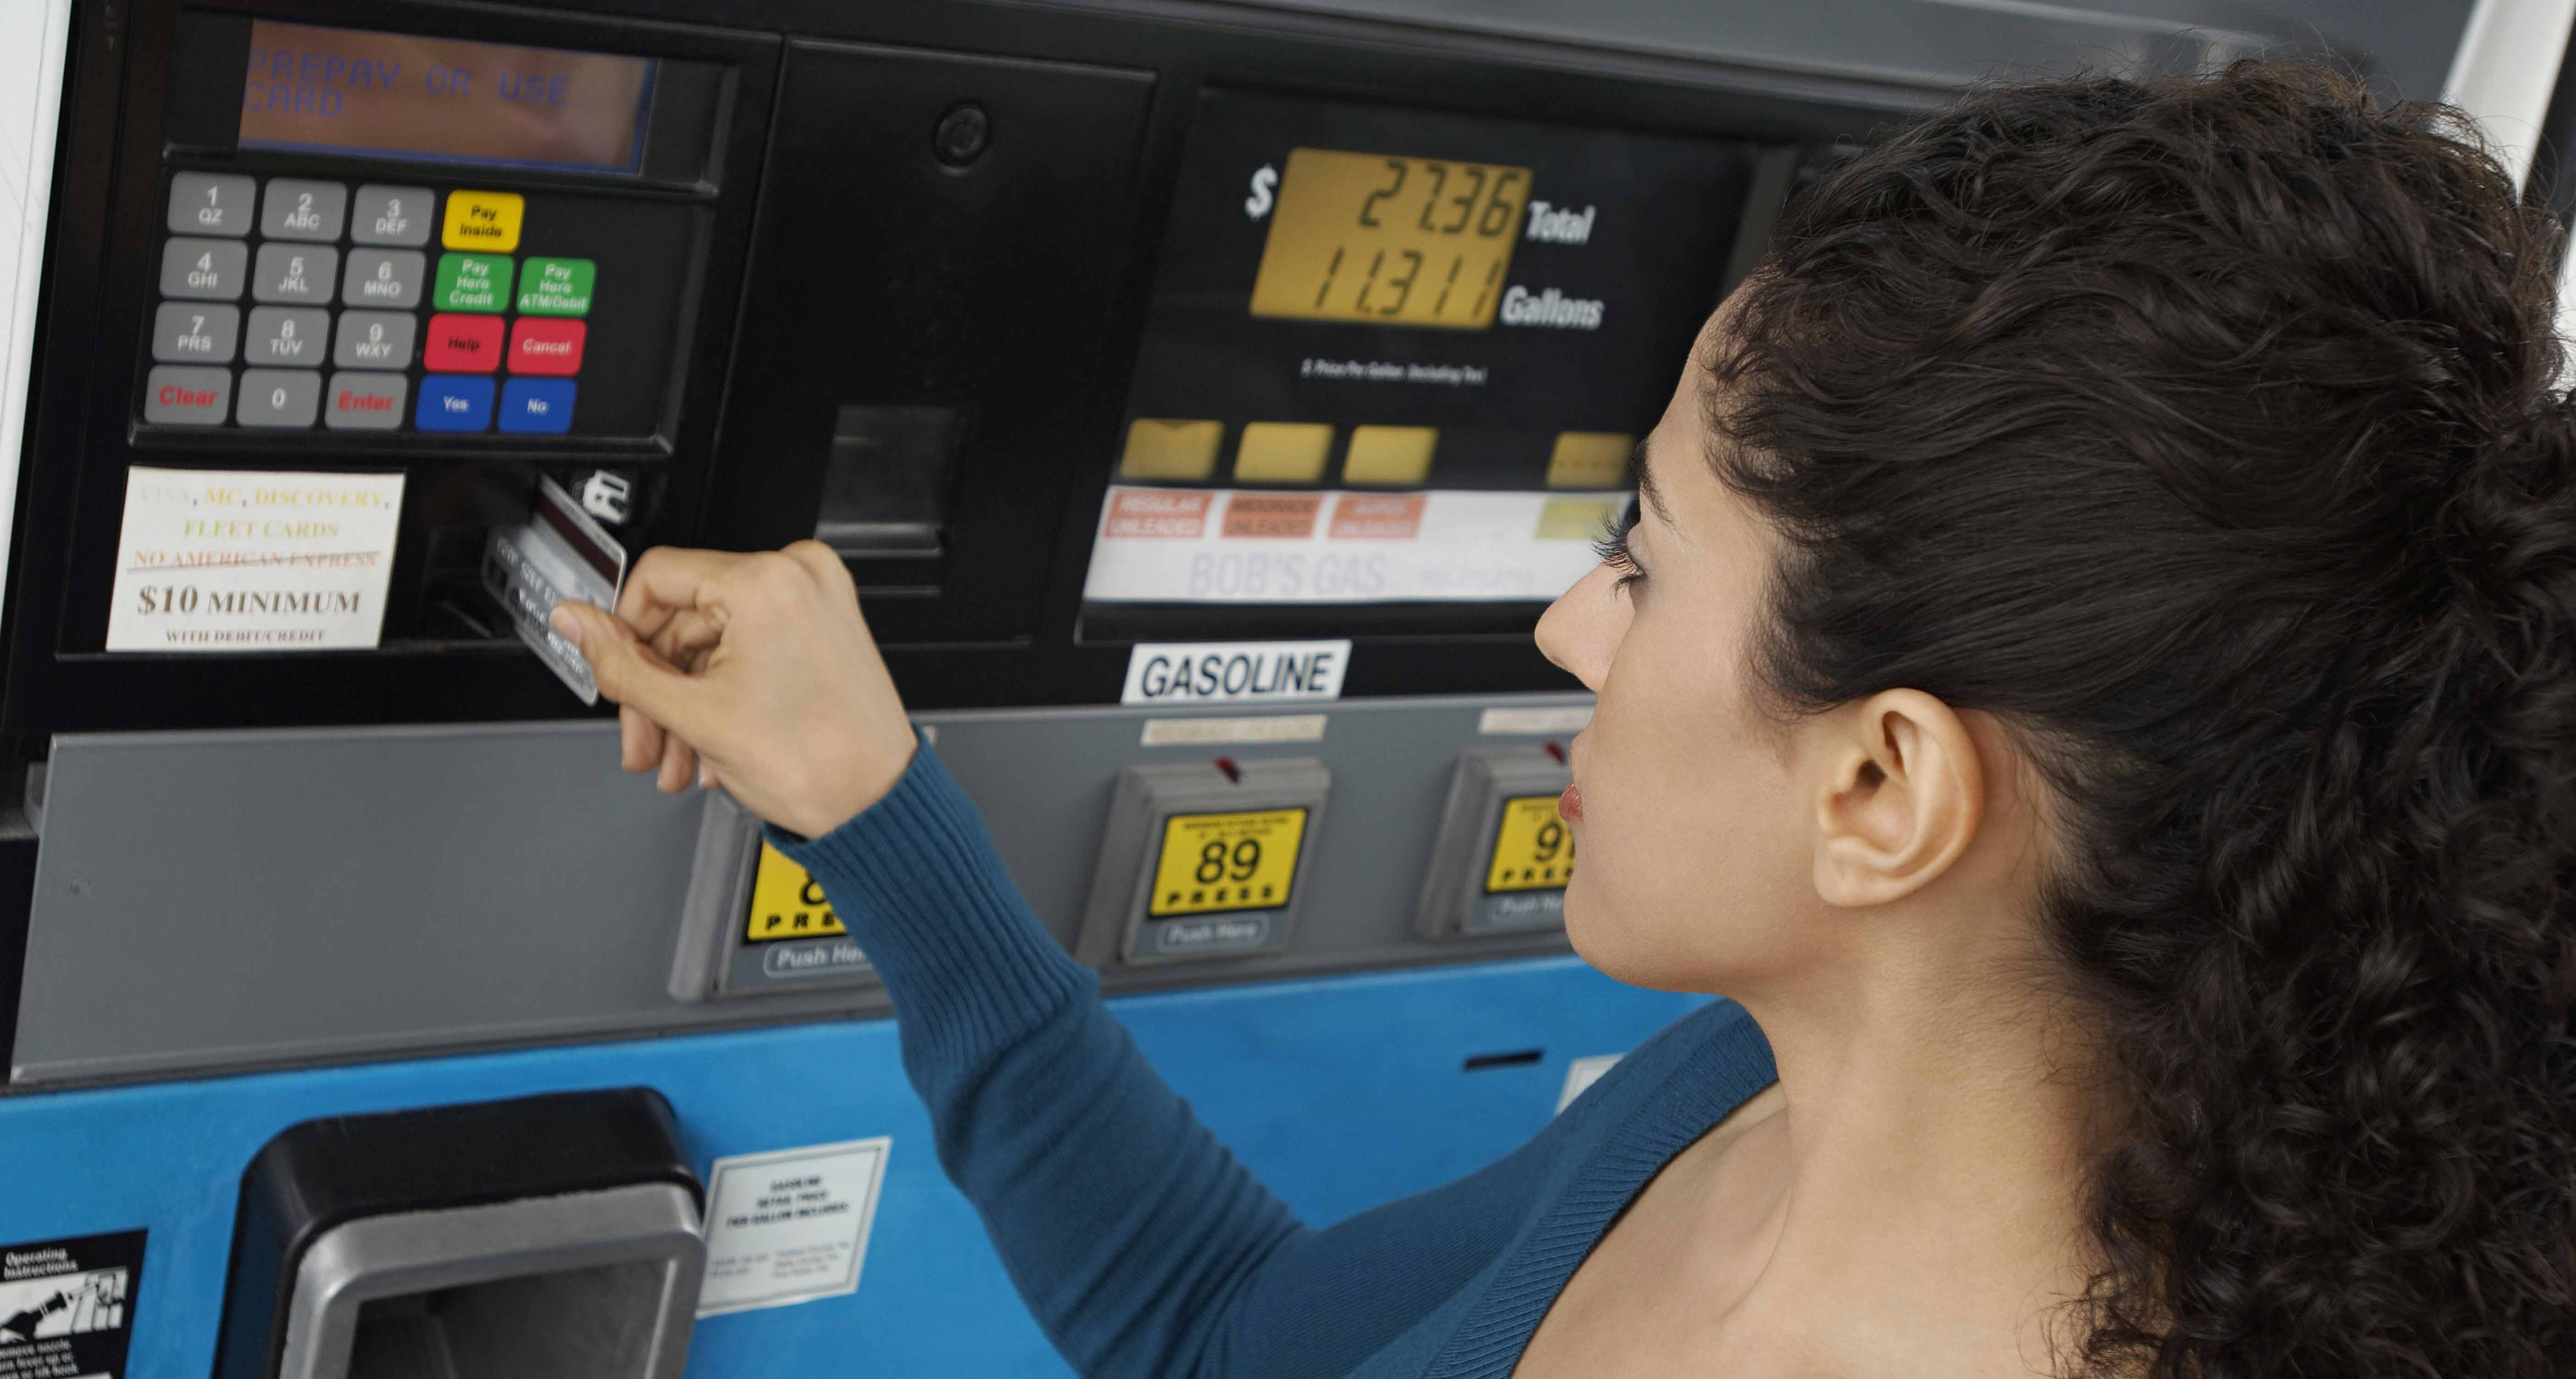 Woman-Paying-for-gas.jpg